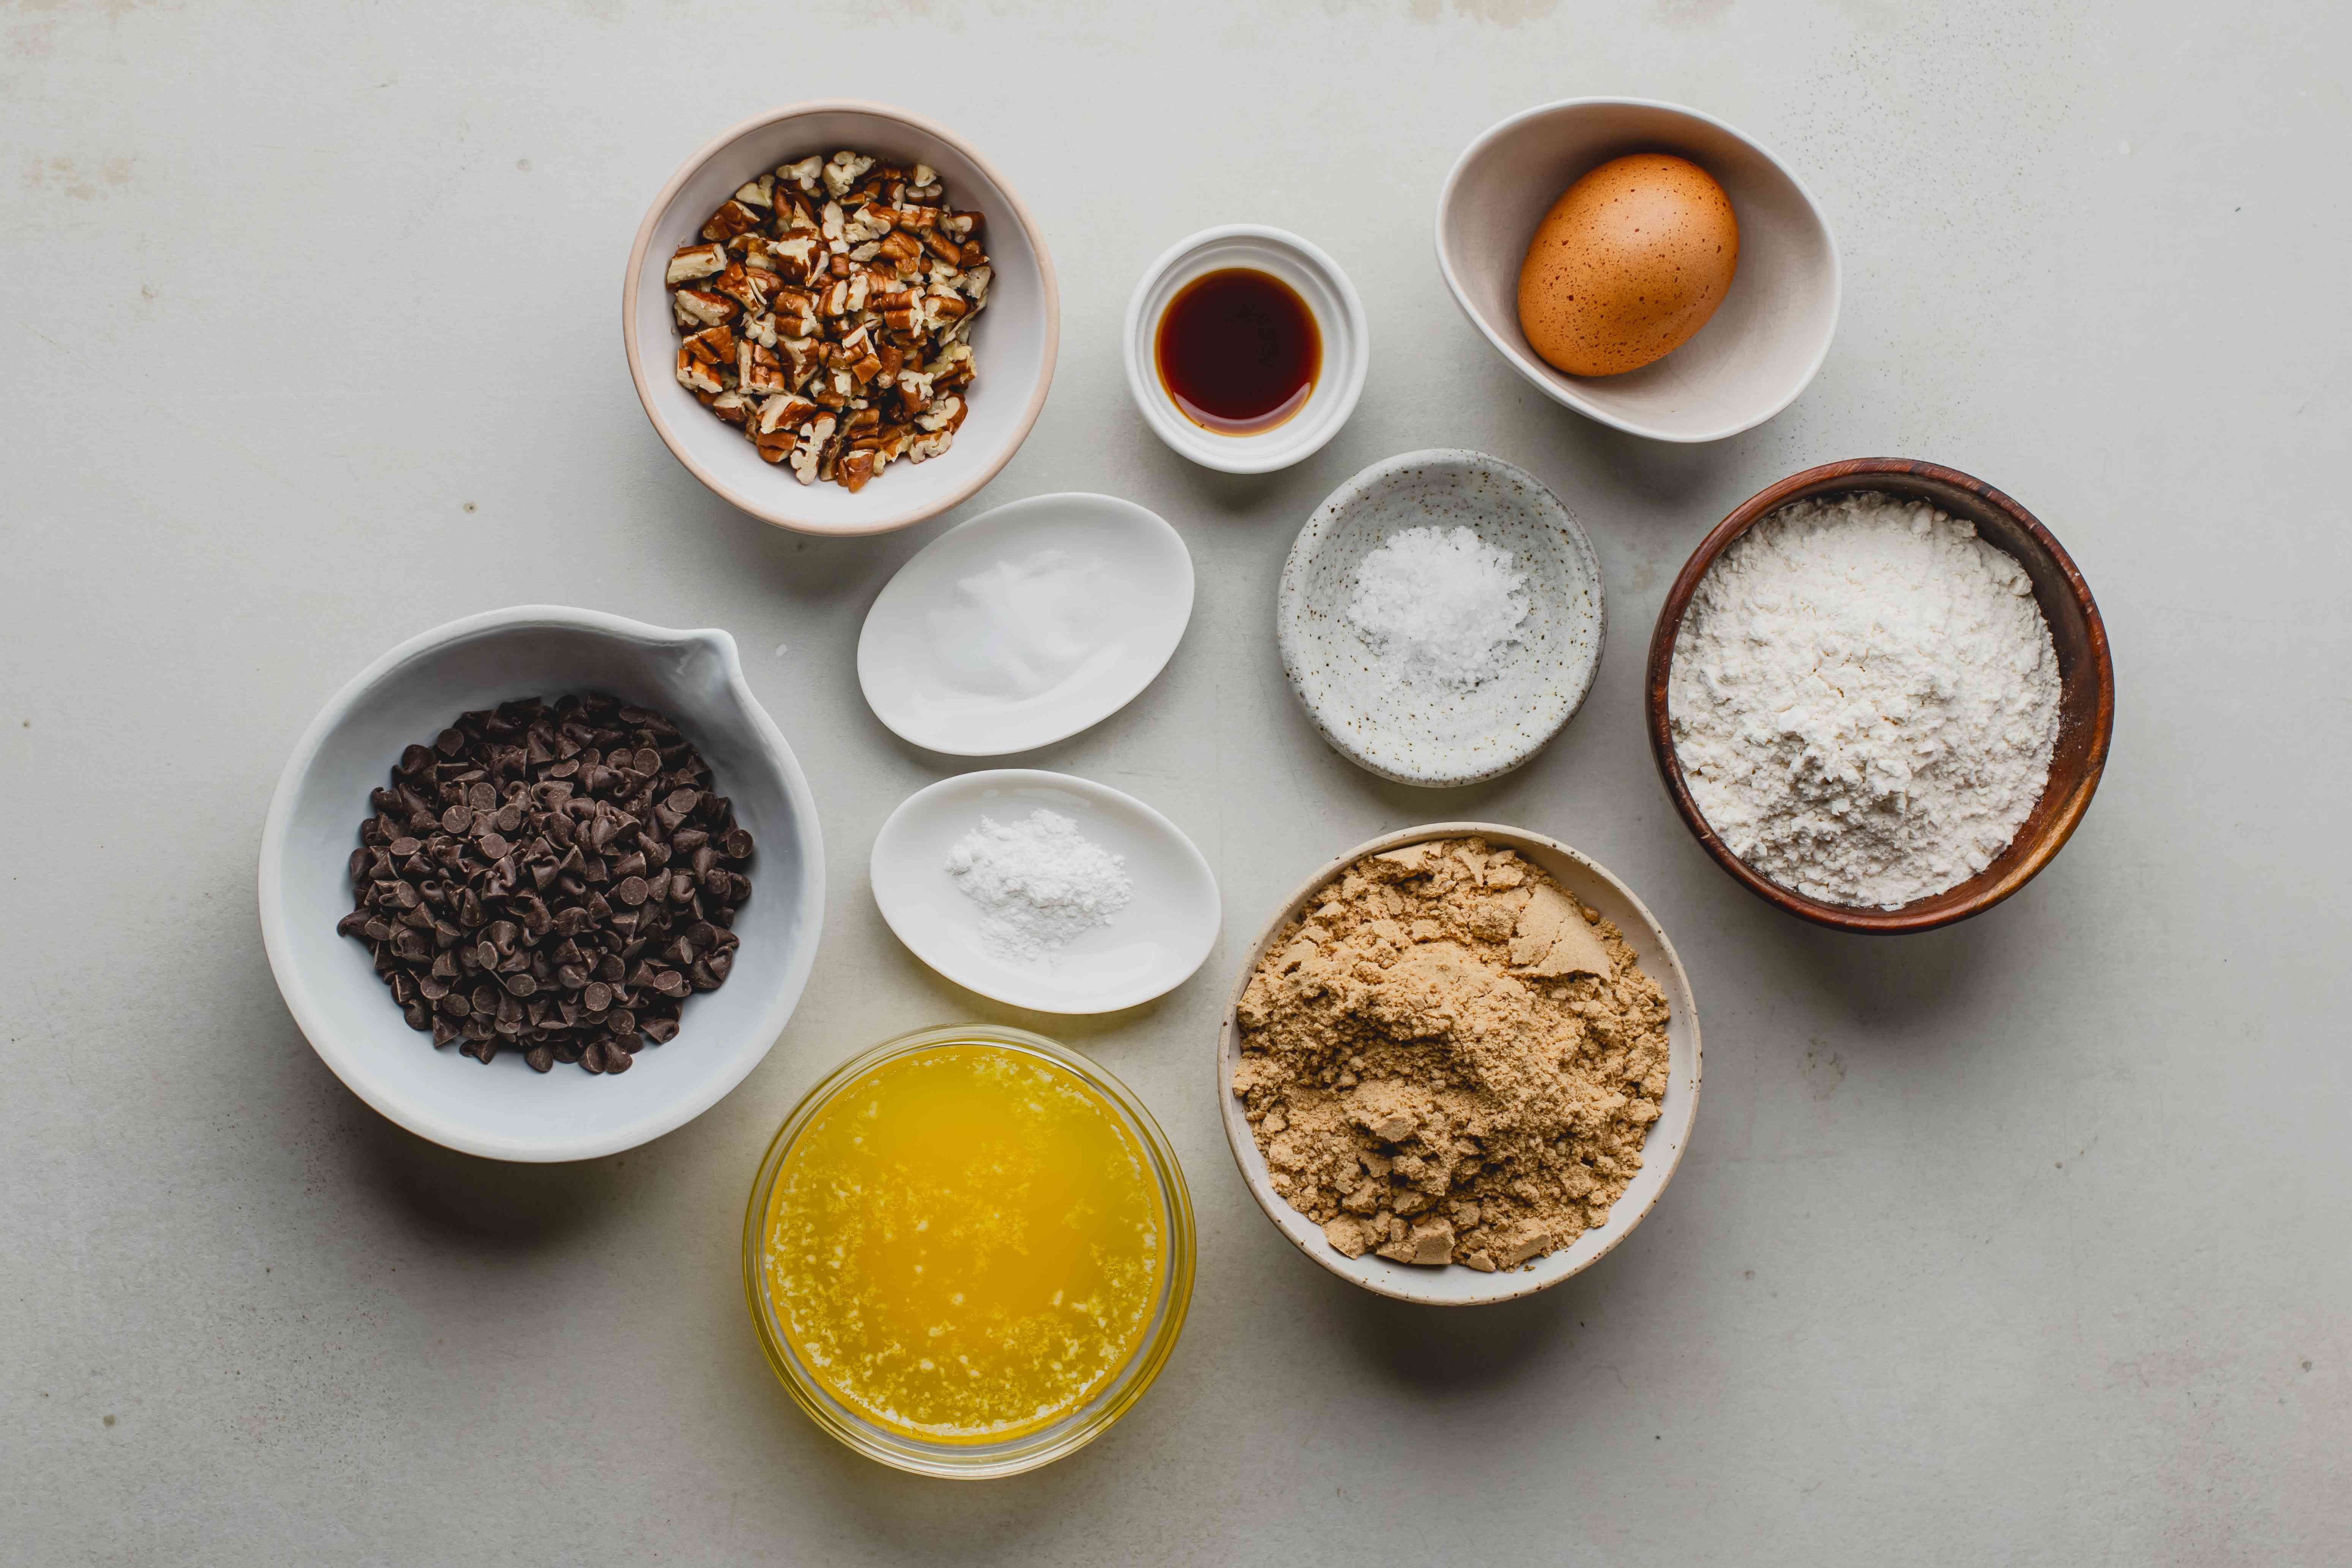 Ingredients for blondie topping